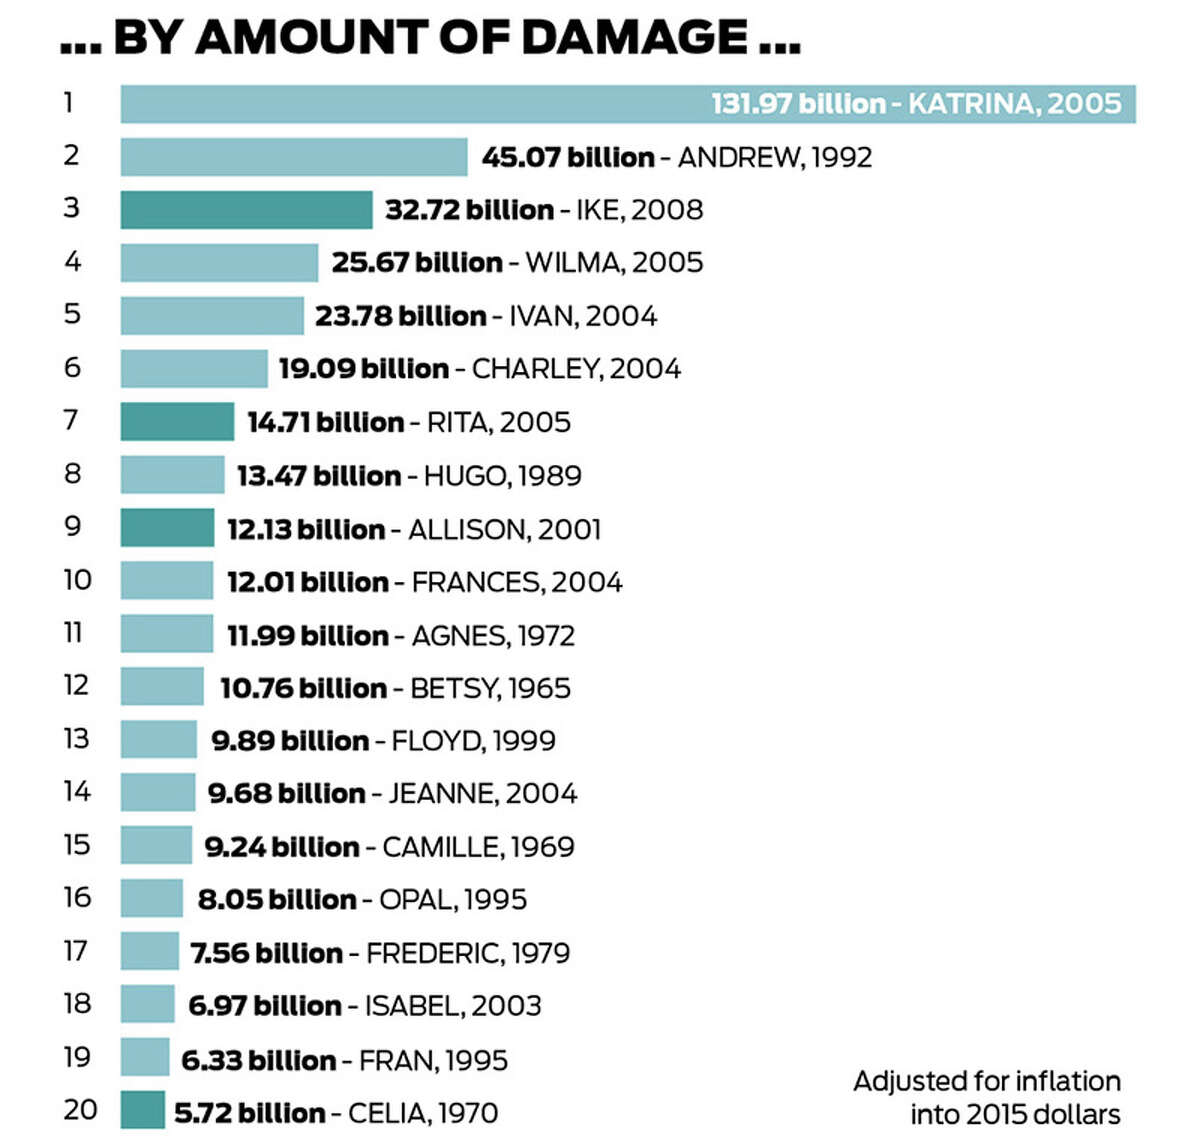 Hurricanes ranked by cost in the United States. Next: ranked by air pressure.